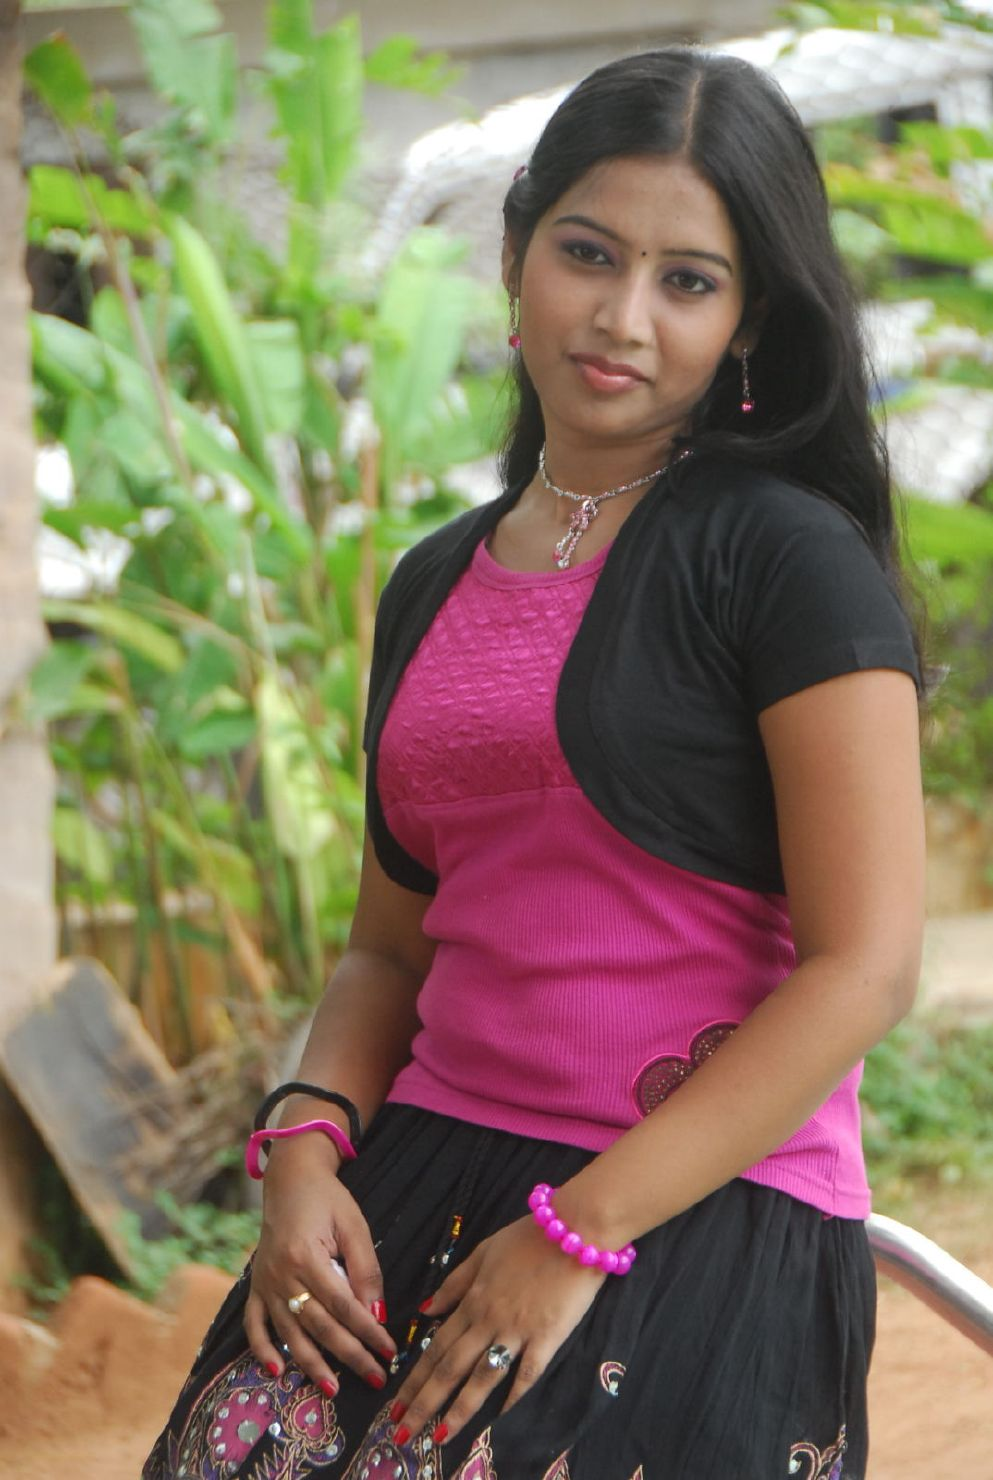 Indaia teen sexy pics share your